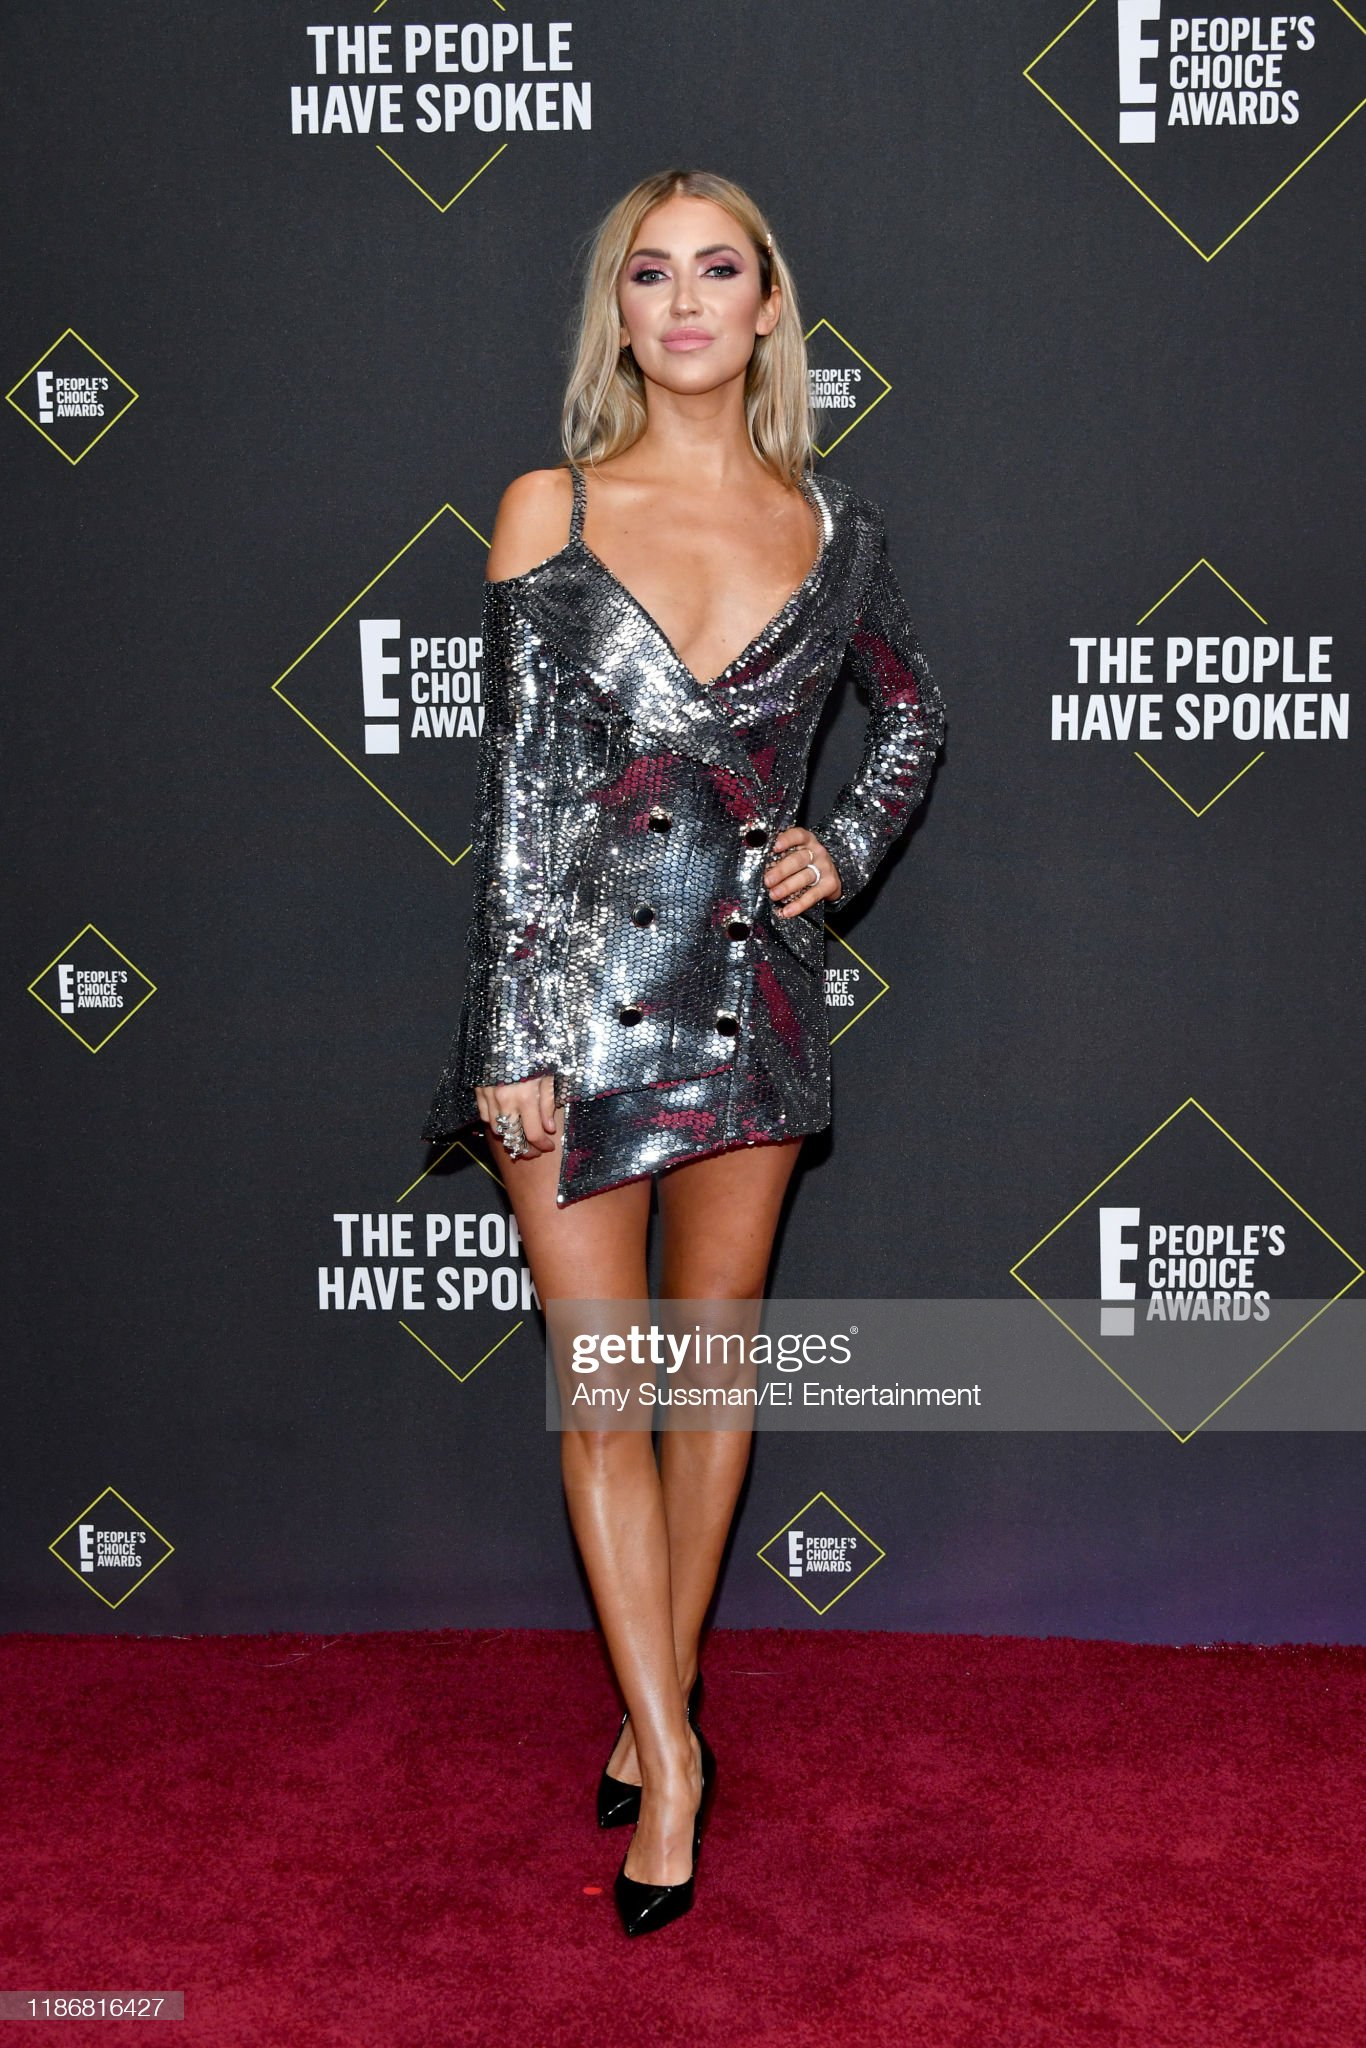 Kaitlyn Bristowe & Jason Tartick - Bachelorette 11 - Discussion  - Page 8 Pictured-kaitlyn-bristowe-arrives-to-the-2019-e-peoples-choice-awards-picture-id1186816427?s=2048x2048